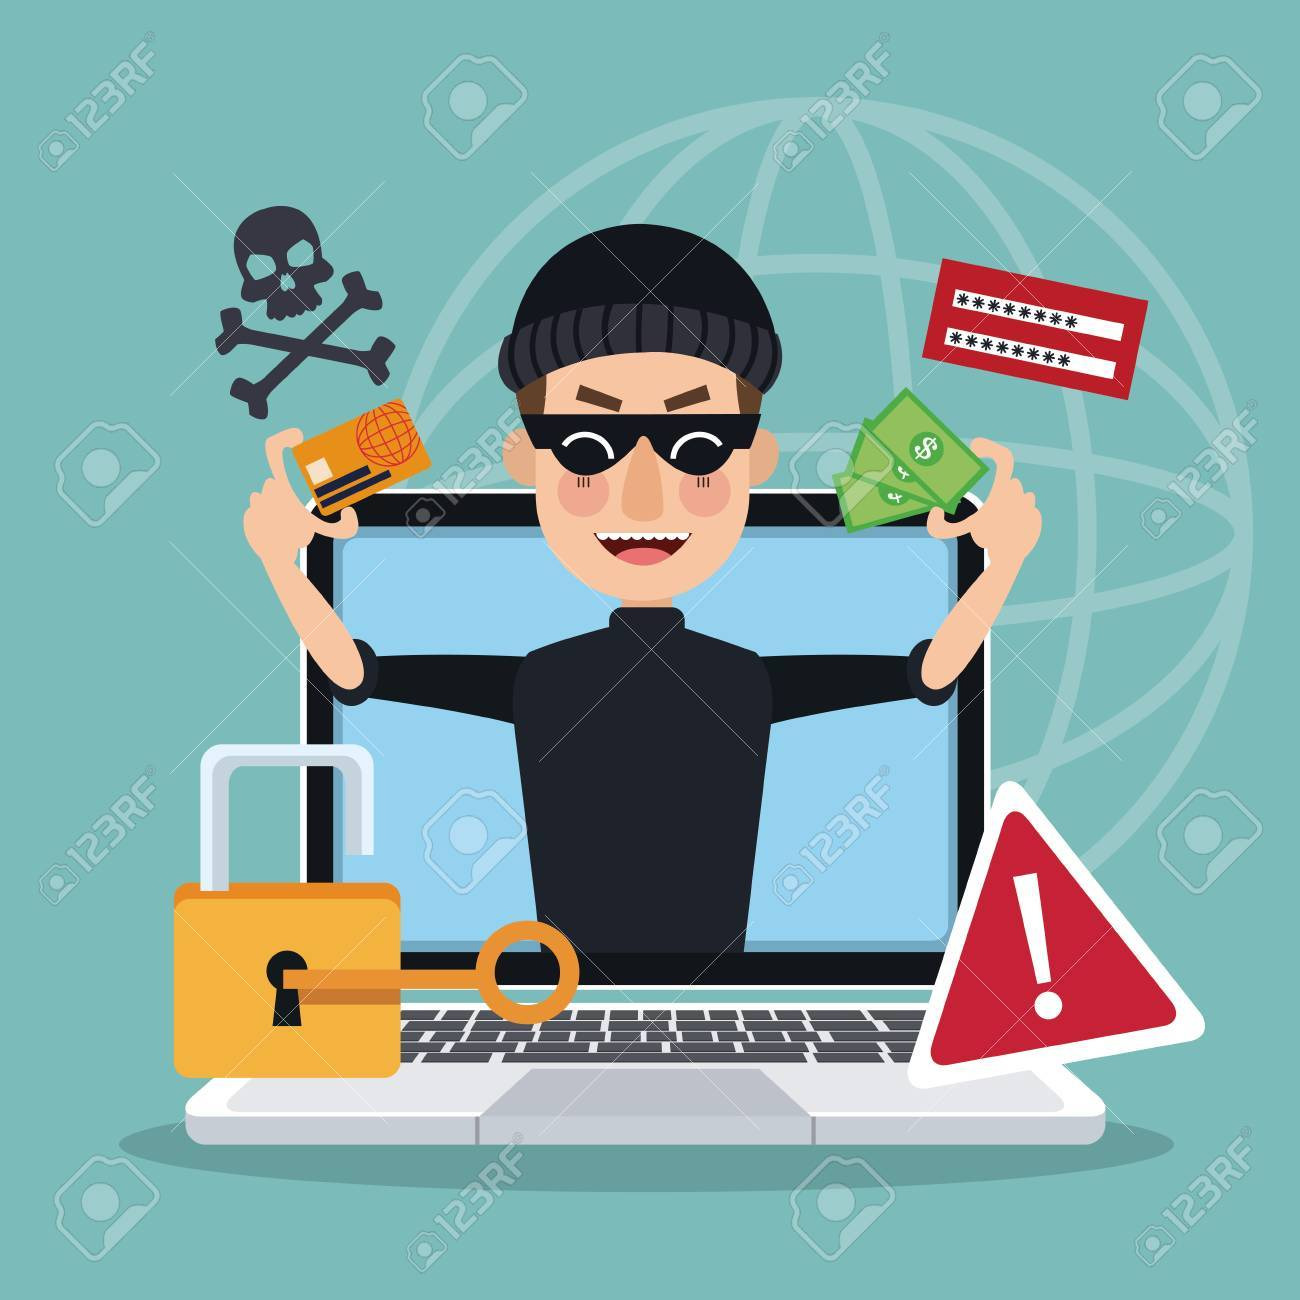 blue background global world silhouette with laptop and thief man hacker stealing attack vector illustration - 79752066